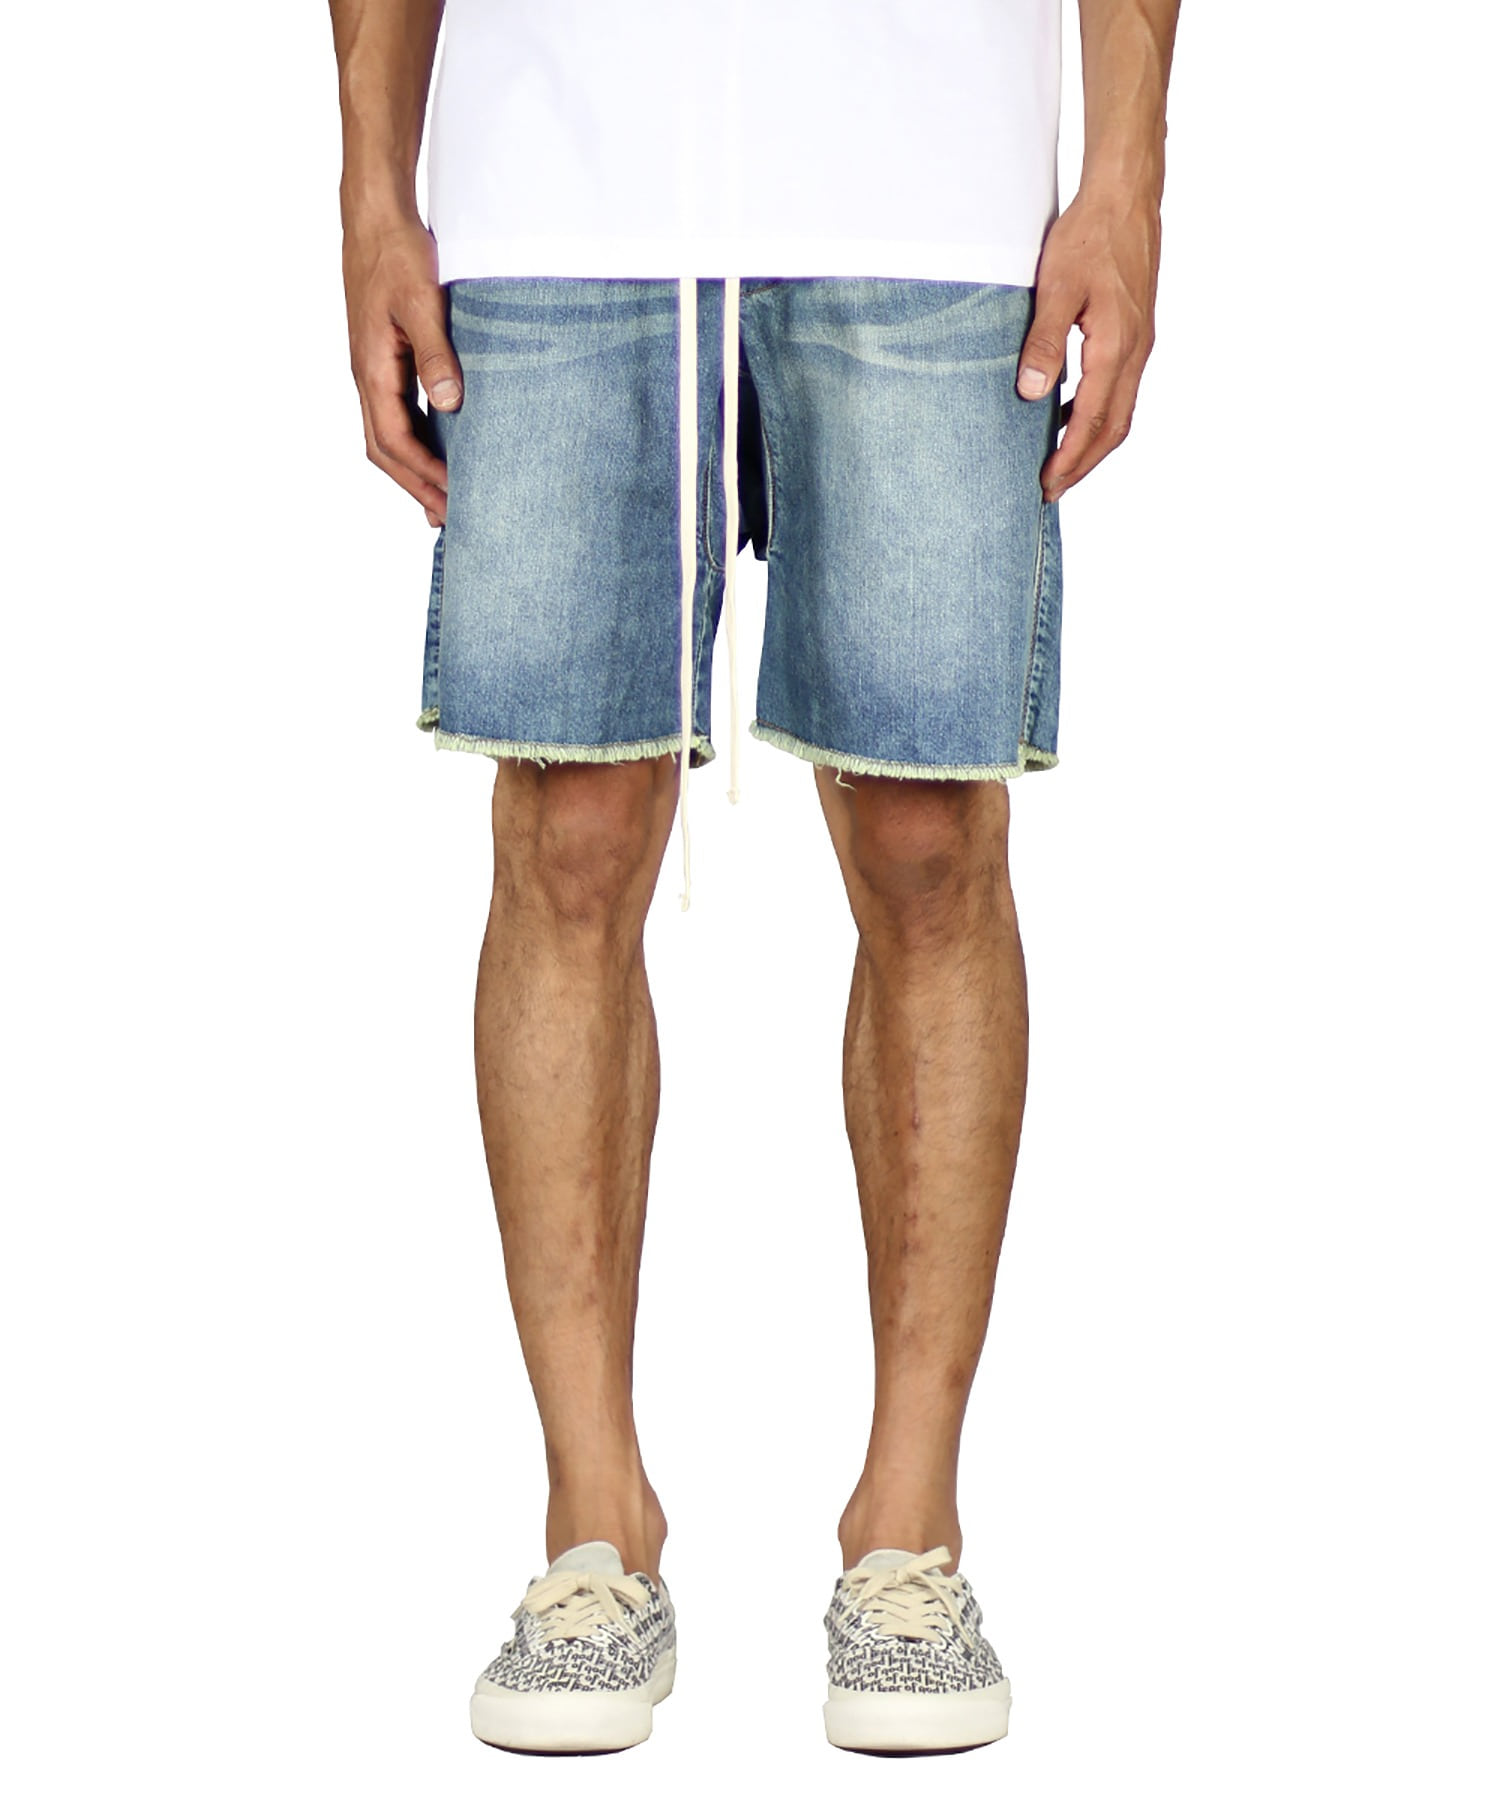 Indigo Drop Denim Short